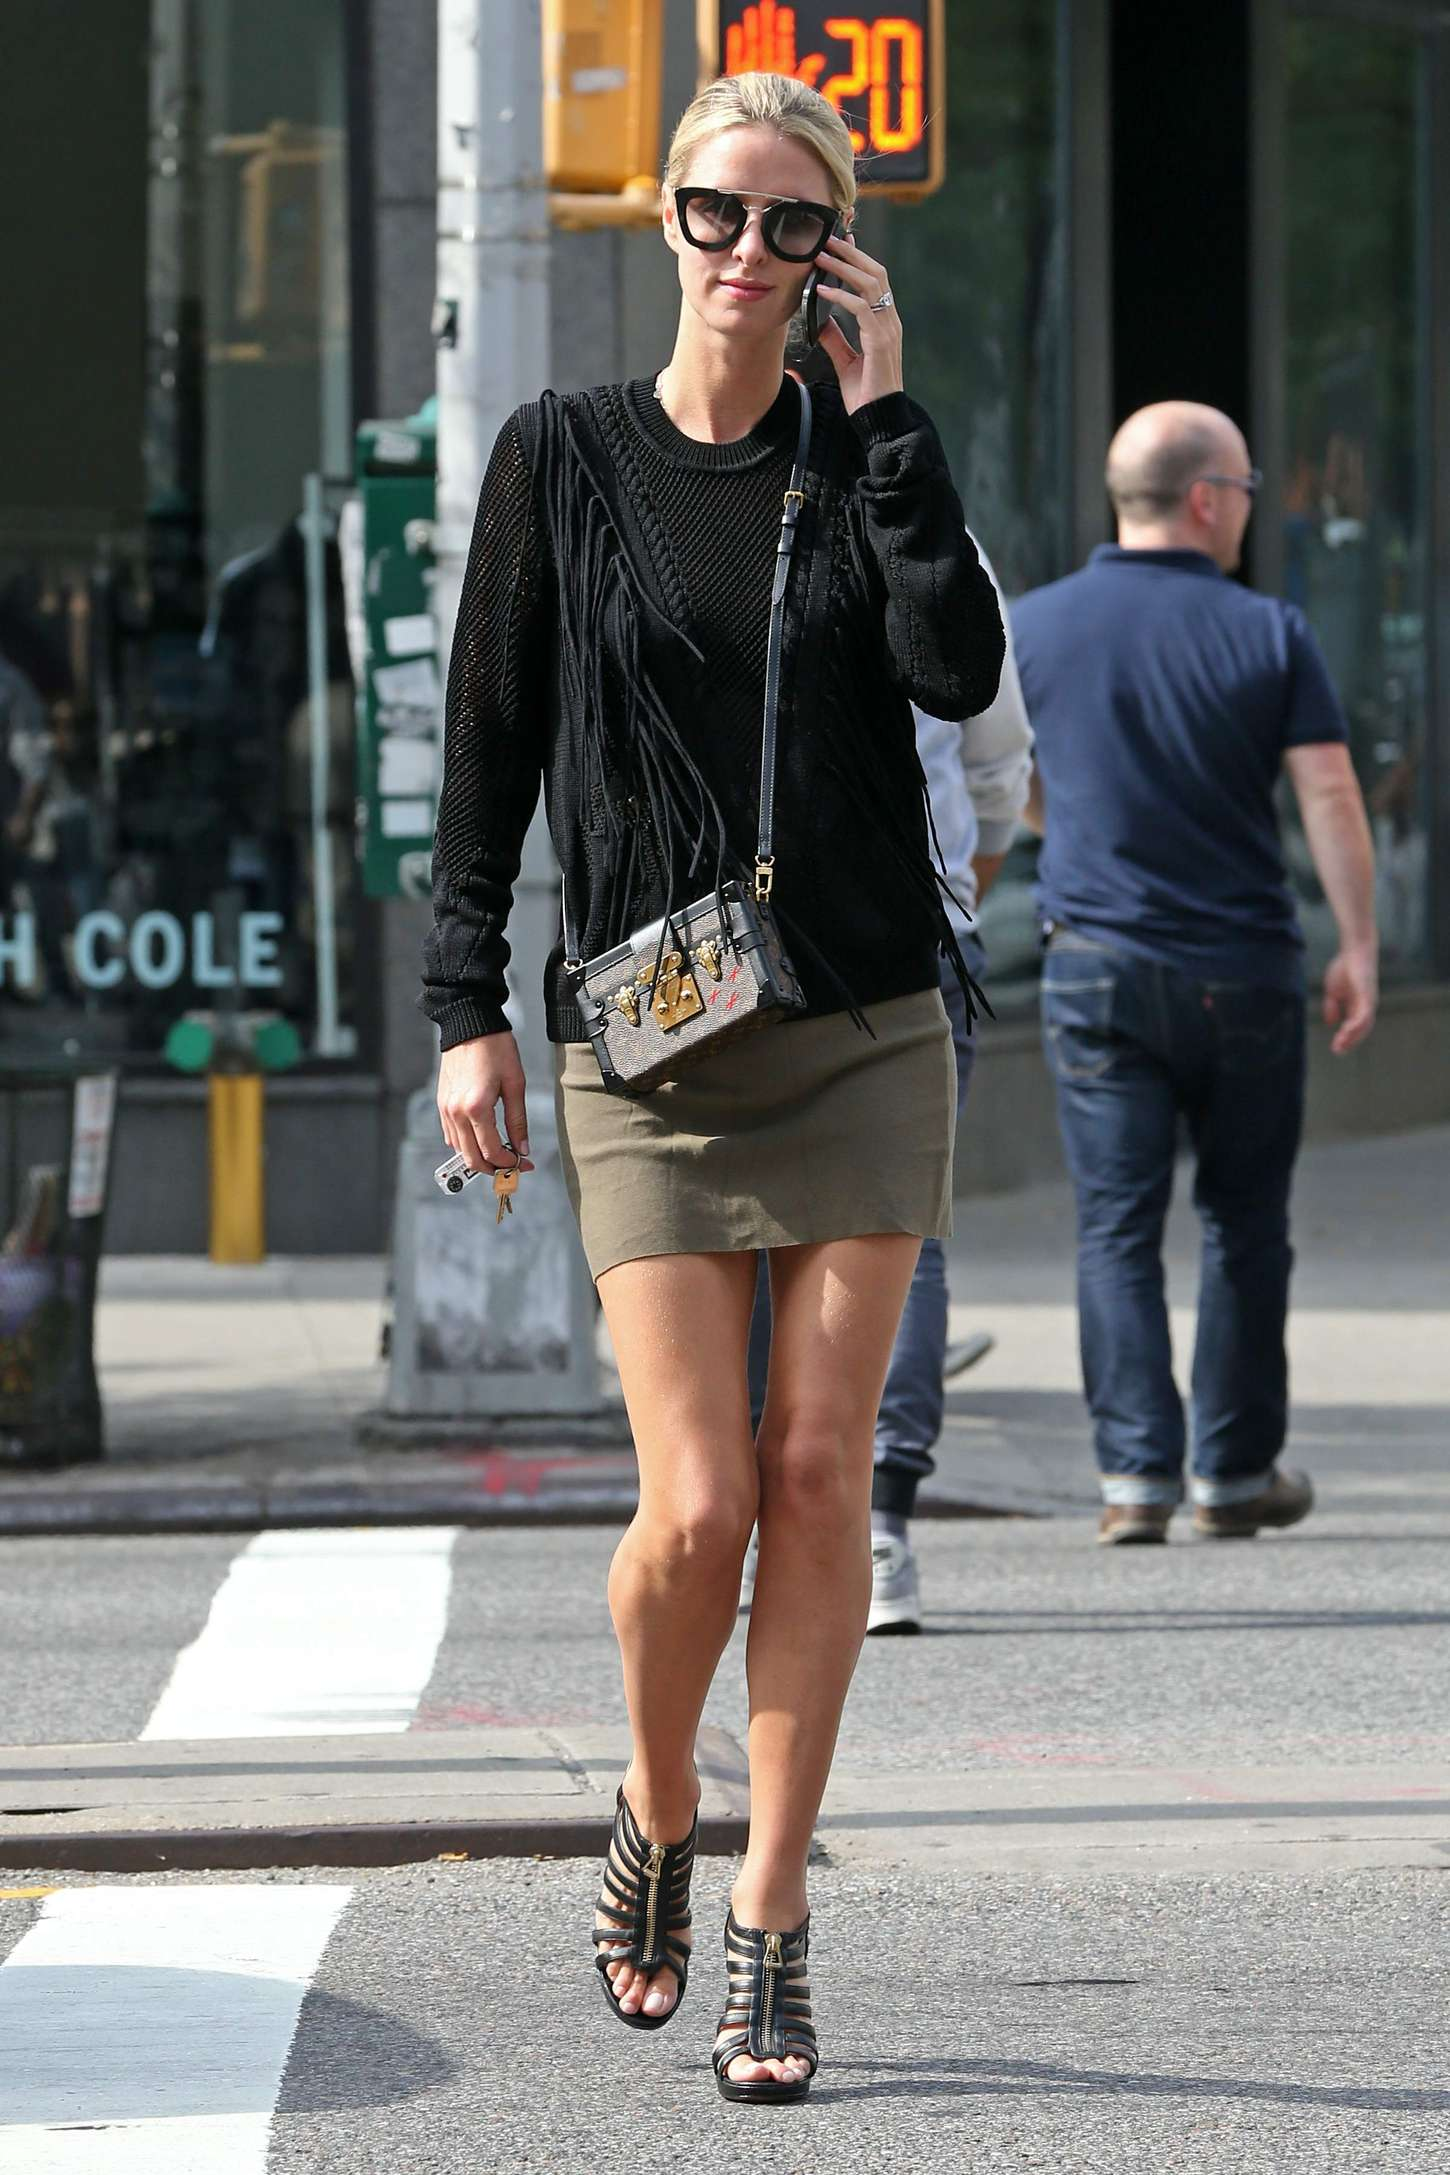 Nicky Hilton in Mini Skirt out shopping in NYC